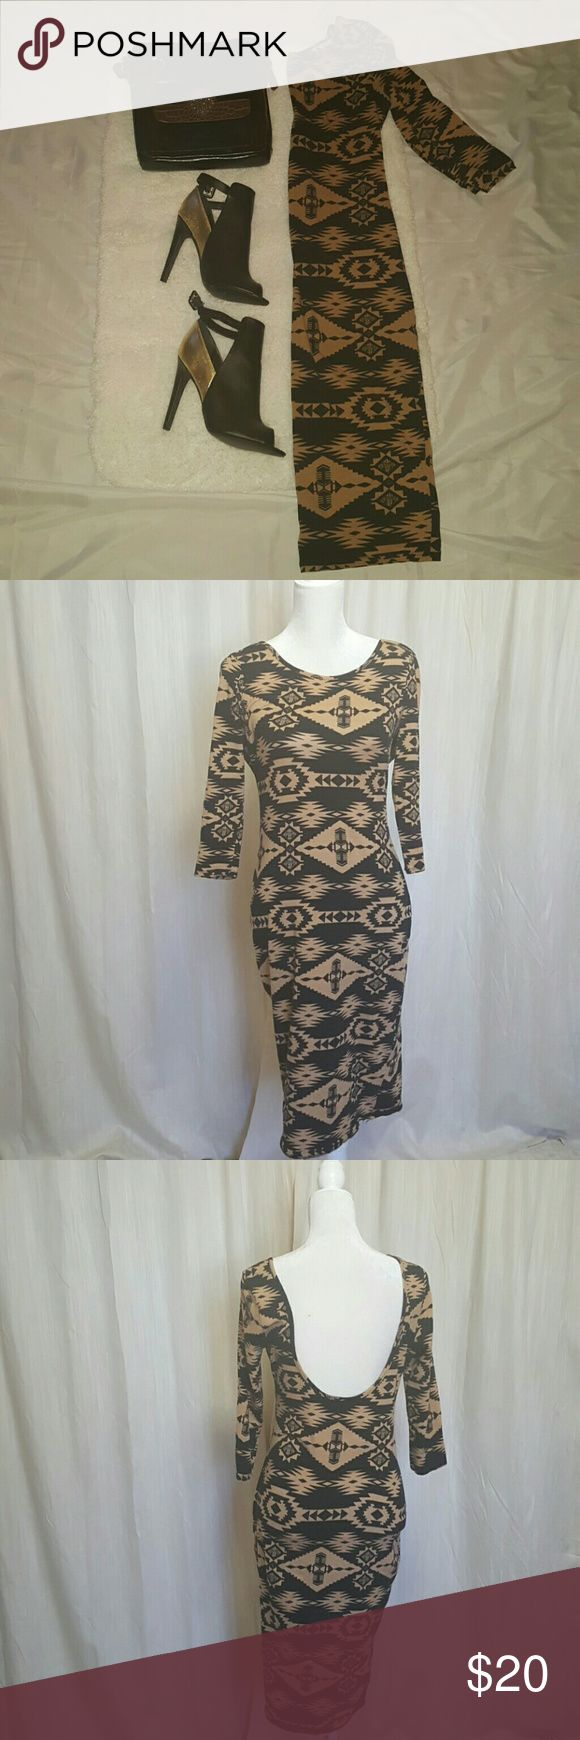 Aztec print dress Tan and black  Aztec print midi dress. Long sleeves. Low back line. Body Central Dresses Midi